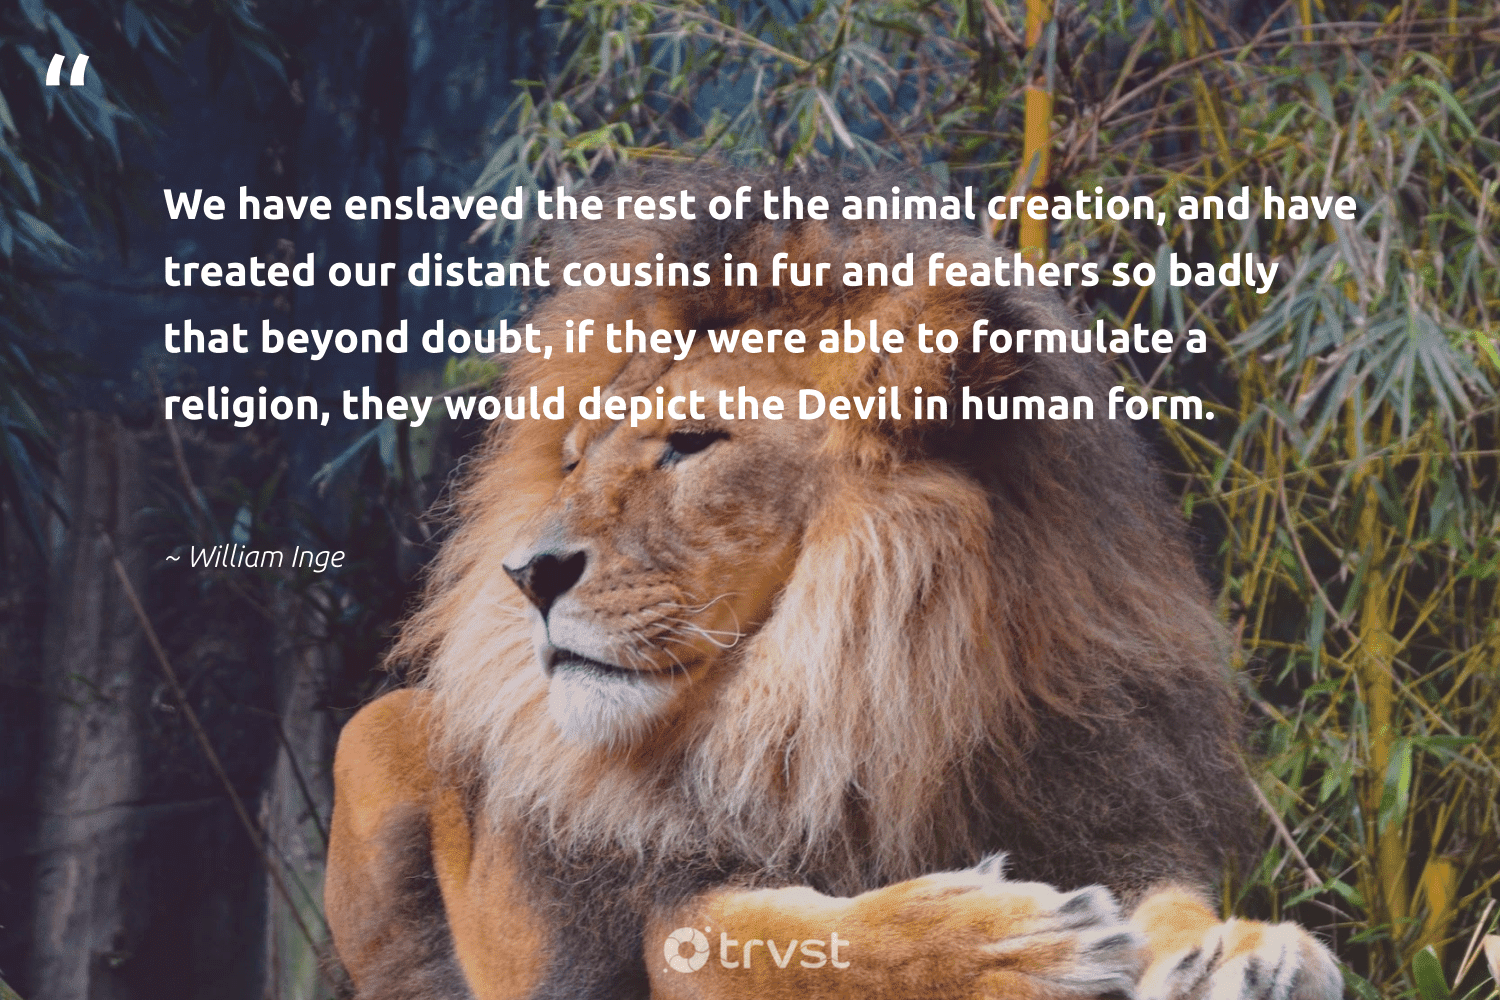 """""""We have enslaved the rest of the animal creation, and have treated our distant cousins in fur and feathers so badly that beyond doubt, if they were able to formulate a religion, they would depict the Devil in human form.""""  - William Inge #trvst #quotes #wildlife #animal #sanctuary #tiger #thinkgreen #animals #invertebrate #natural #collectiveaction #animallovers"""